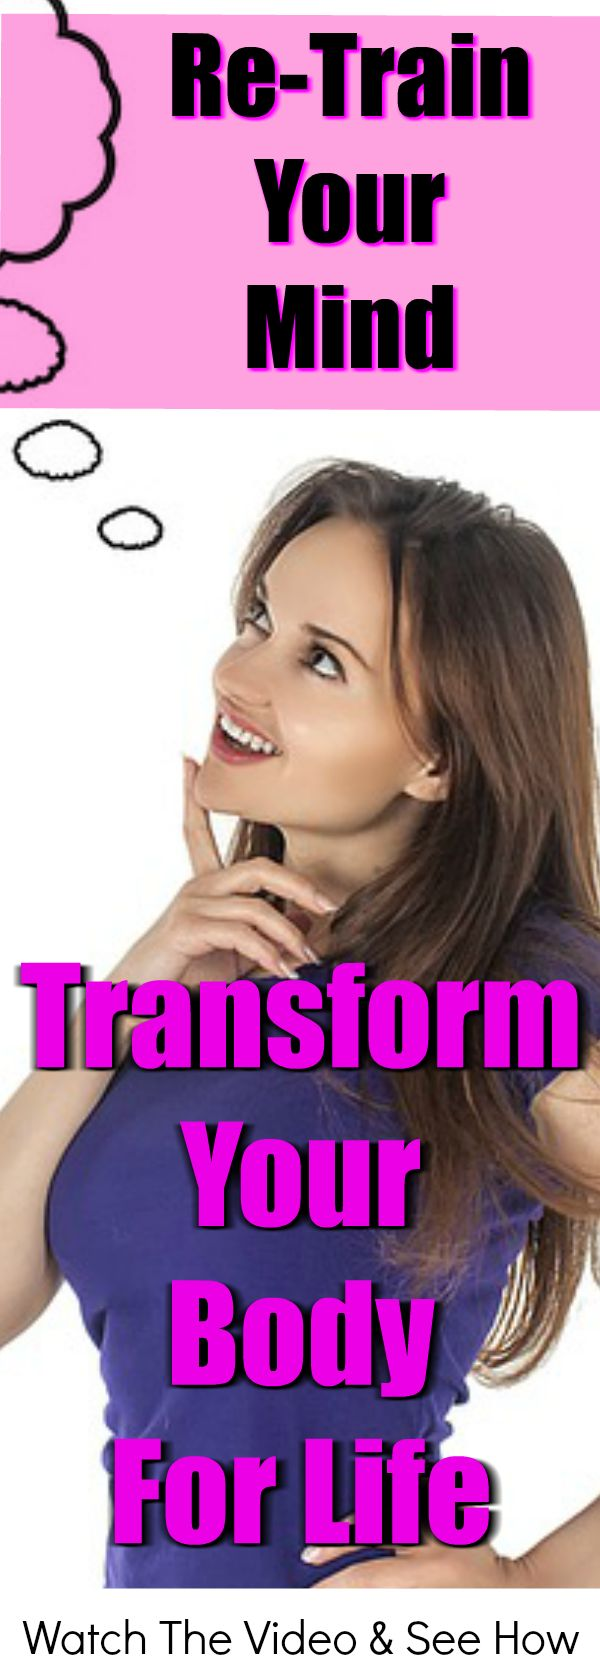 How to lose weight and keep your weight loss motivation in 2018. Use mind training, nutrition and healthy weight loss program. Free weight loss video guide.